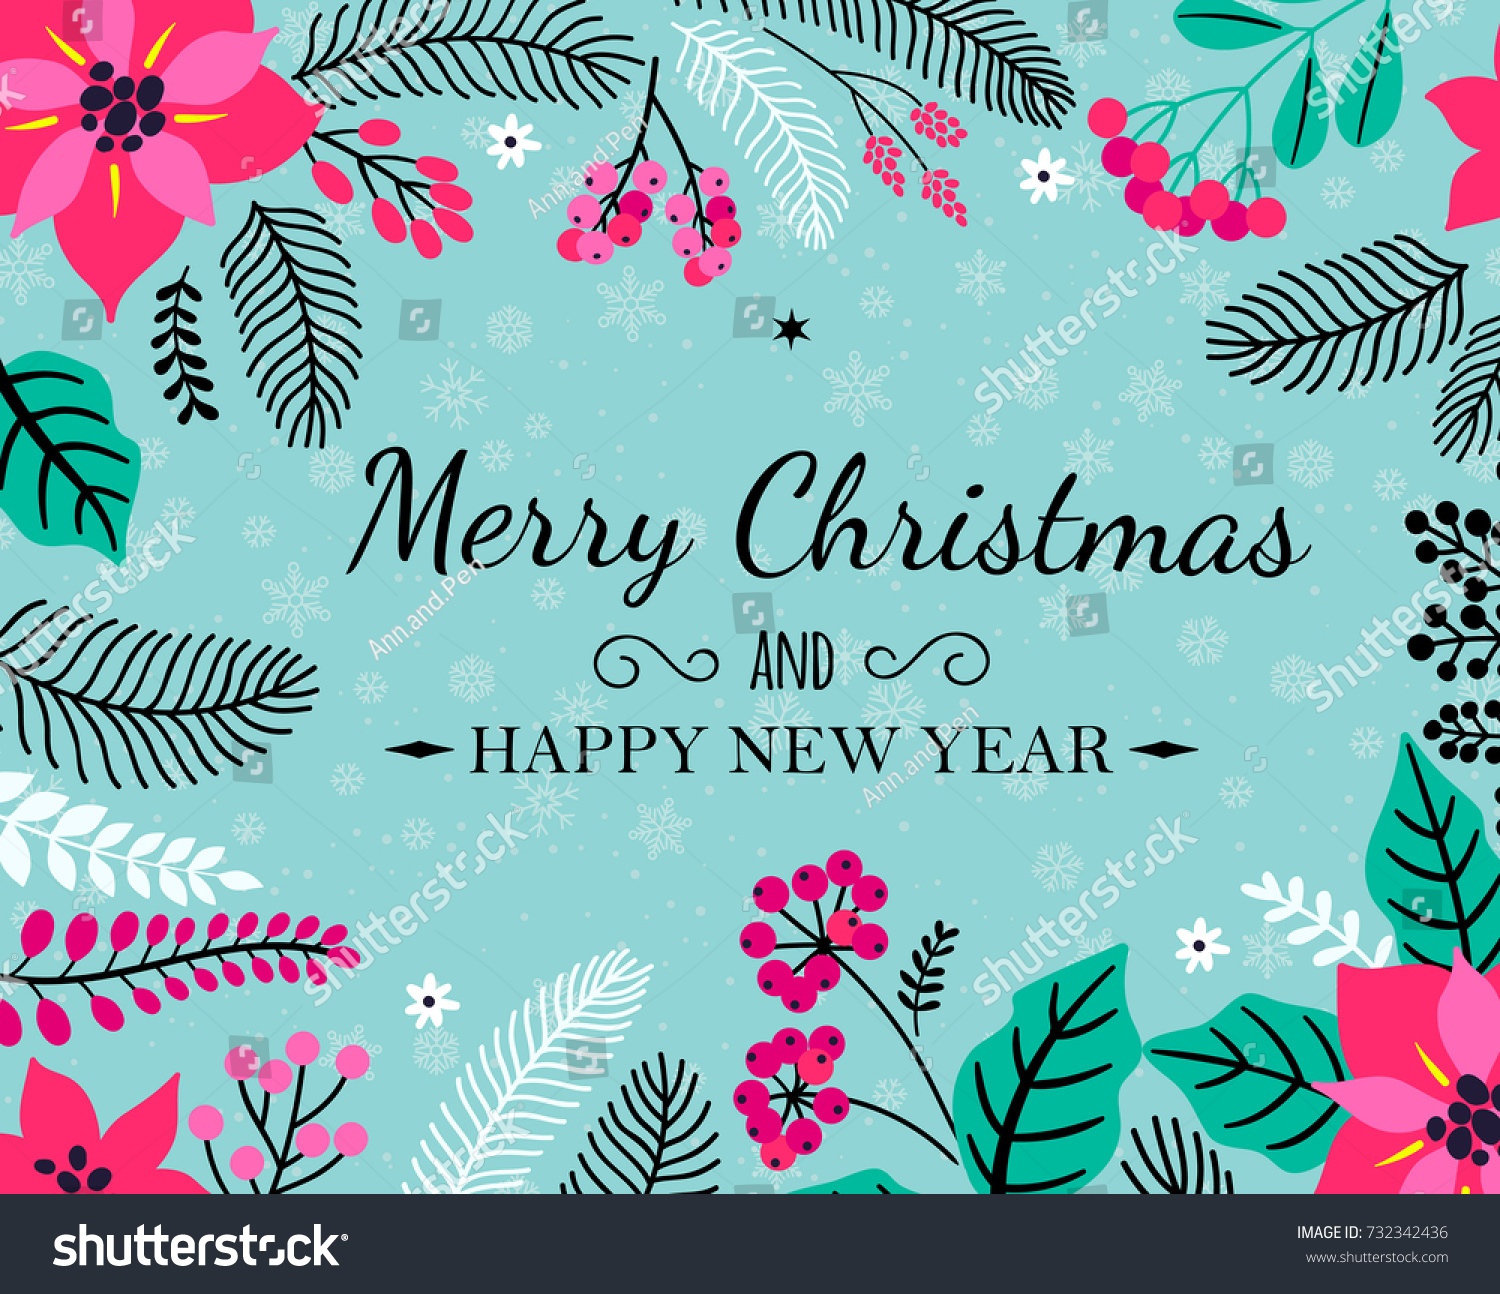 Merry christmas happy new year holiday stock vector 732342436 merry christmas and happy new year holiday greeting card sample card beautiful winter floral ornament kristyandbryce Images